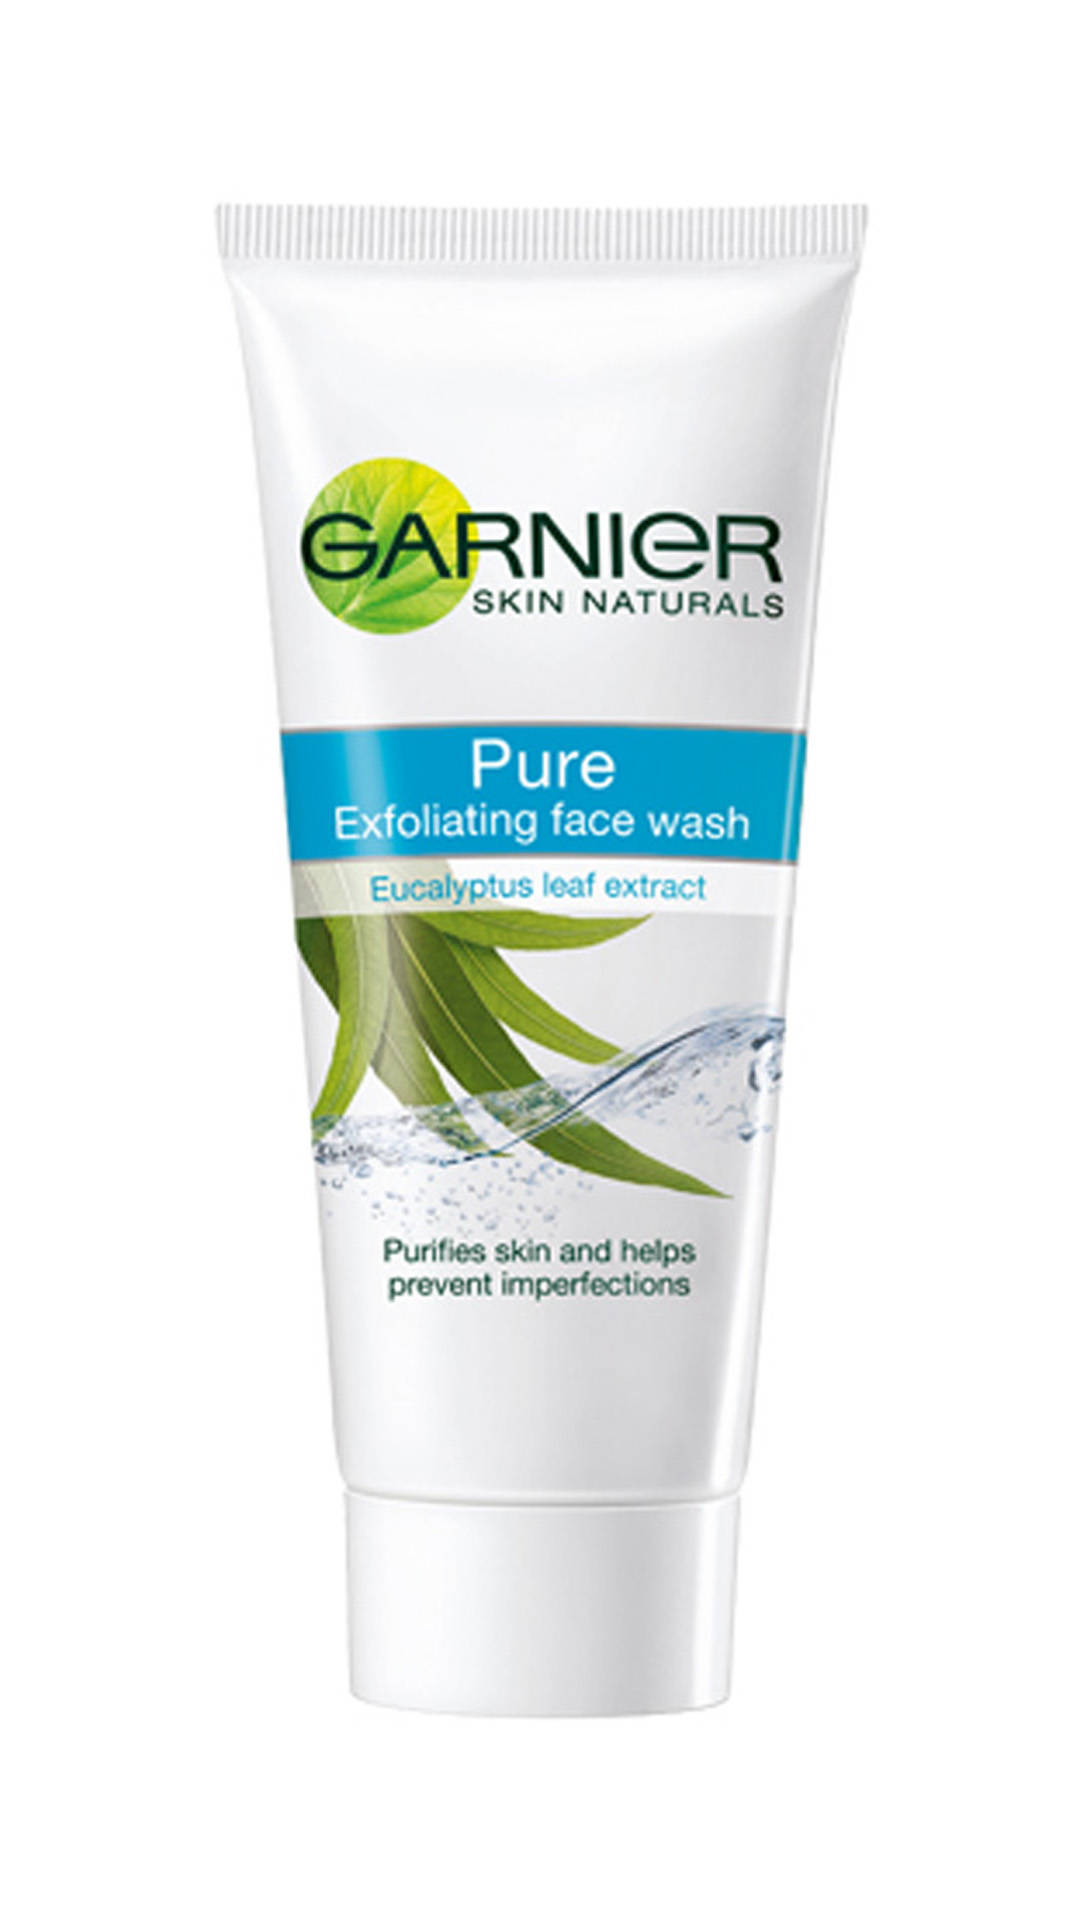 Garnier Skin Naturals Face Wash Review Pure Active Acne Oil Clearing 100ml Mouthshut Score